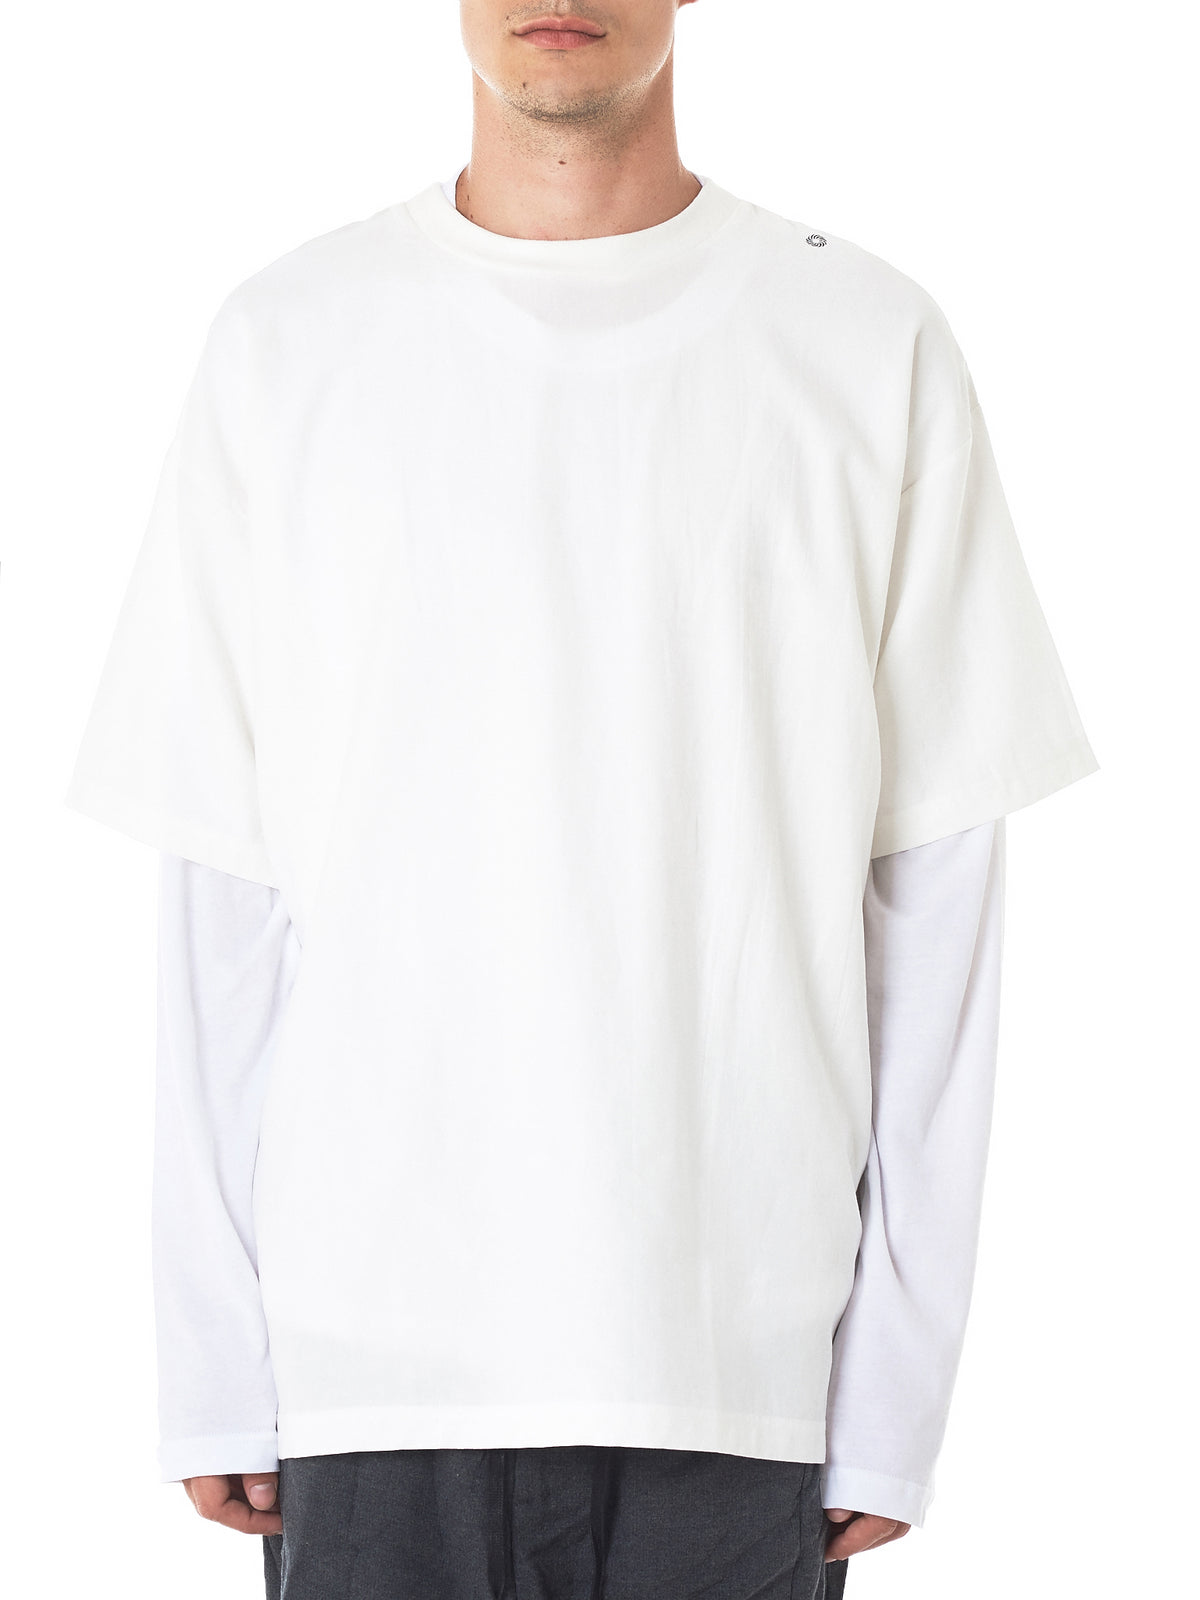 Graphic Crewneck Tee (TS1W-LAYERED-WHITE)